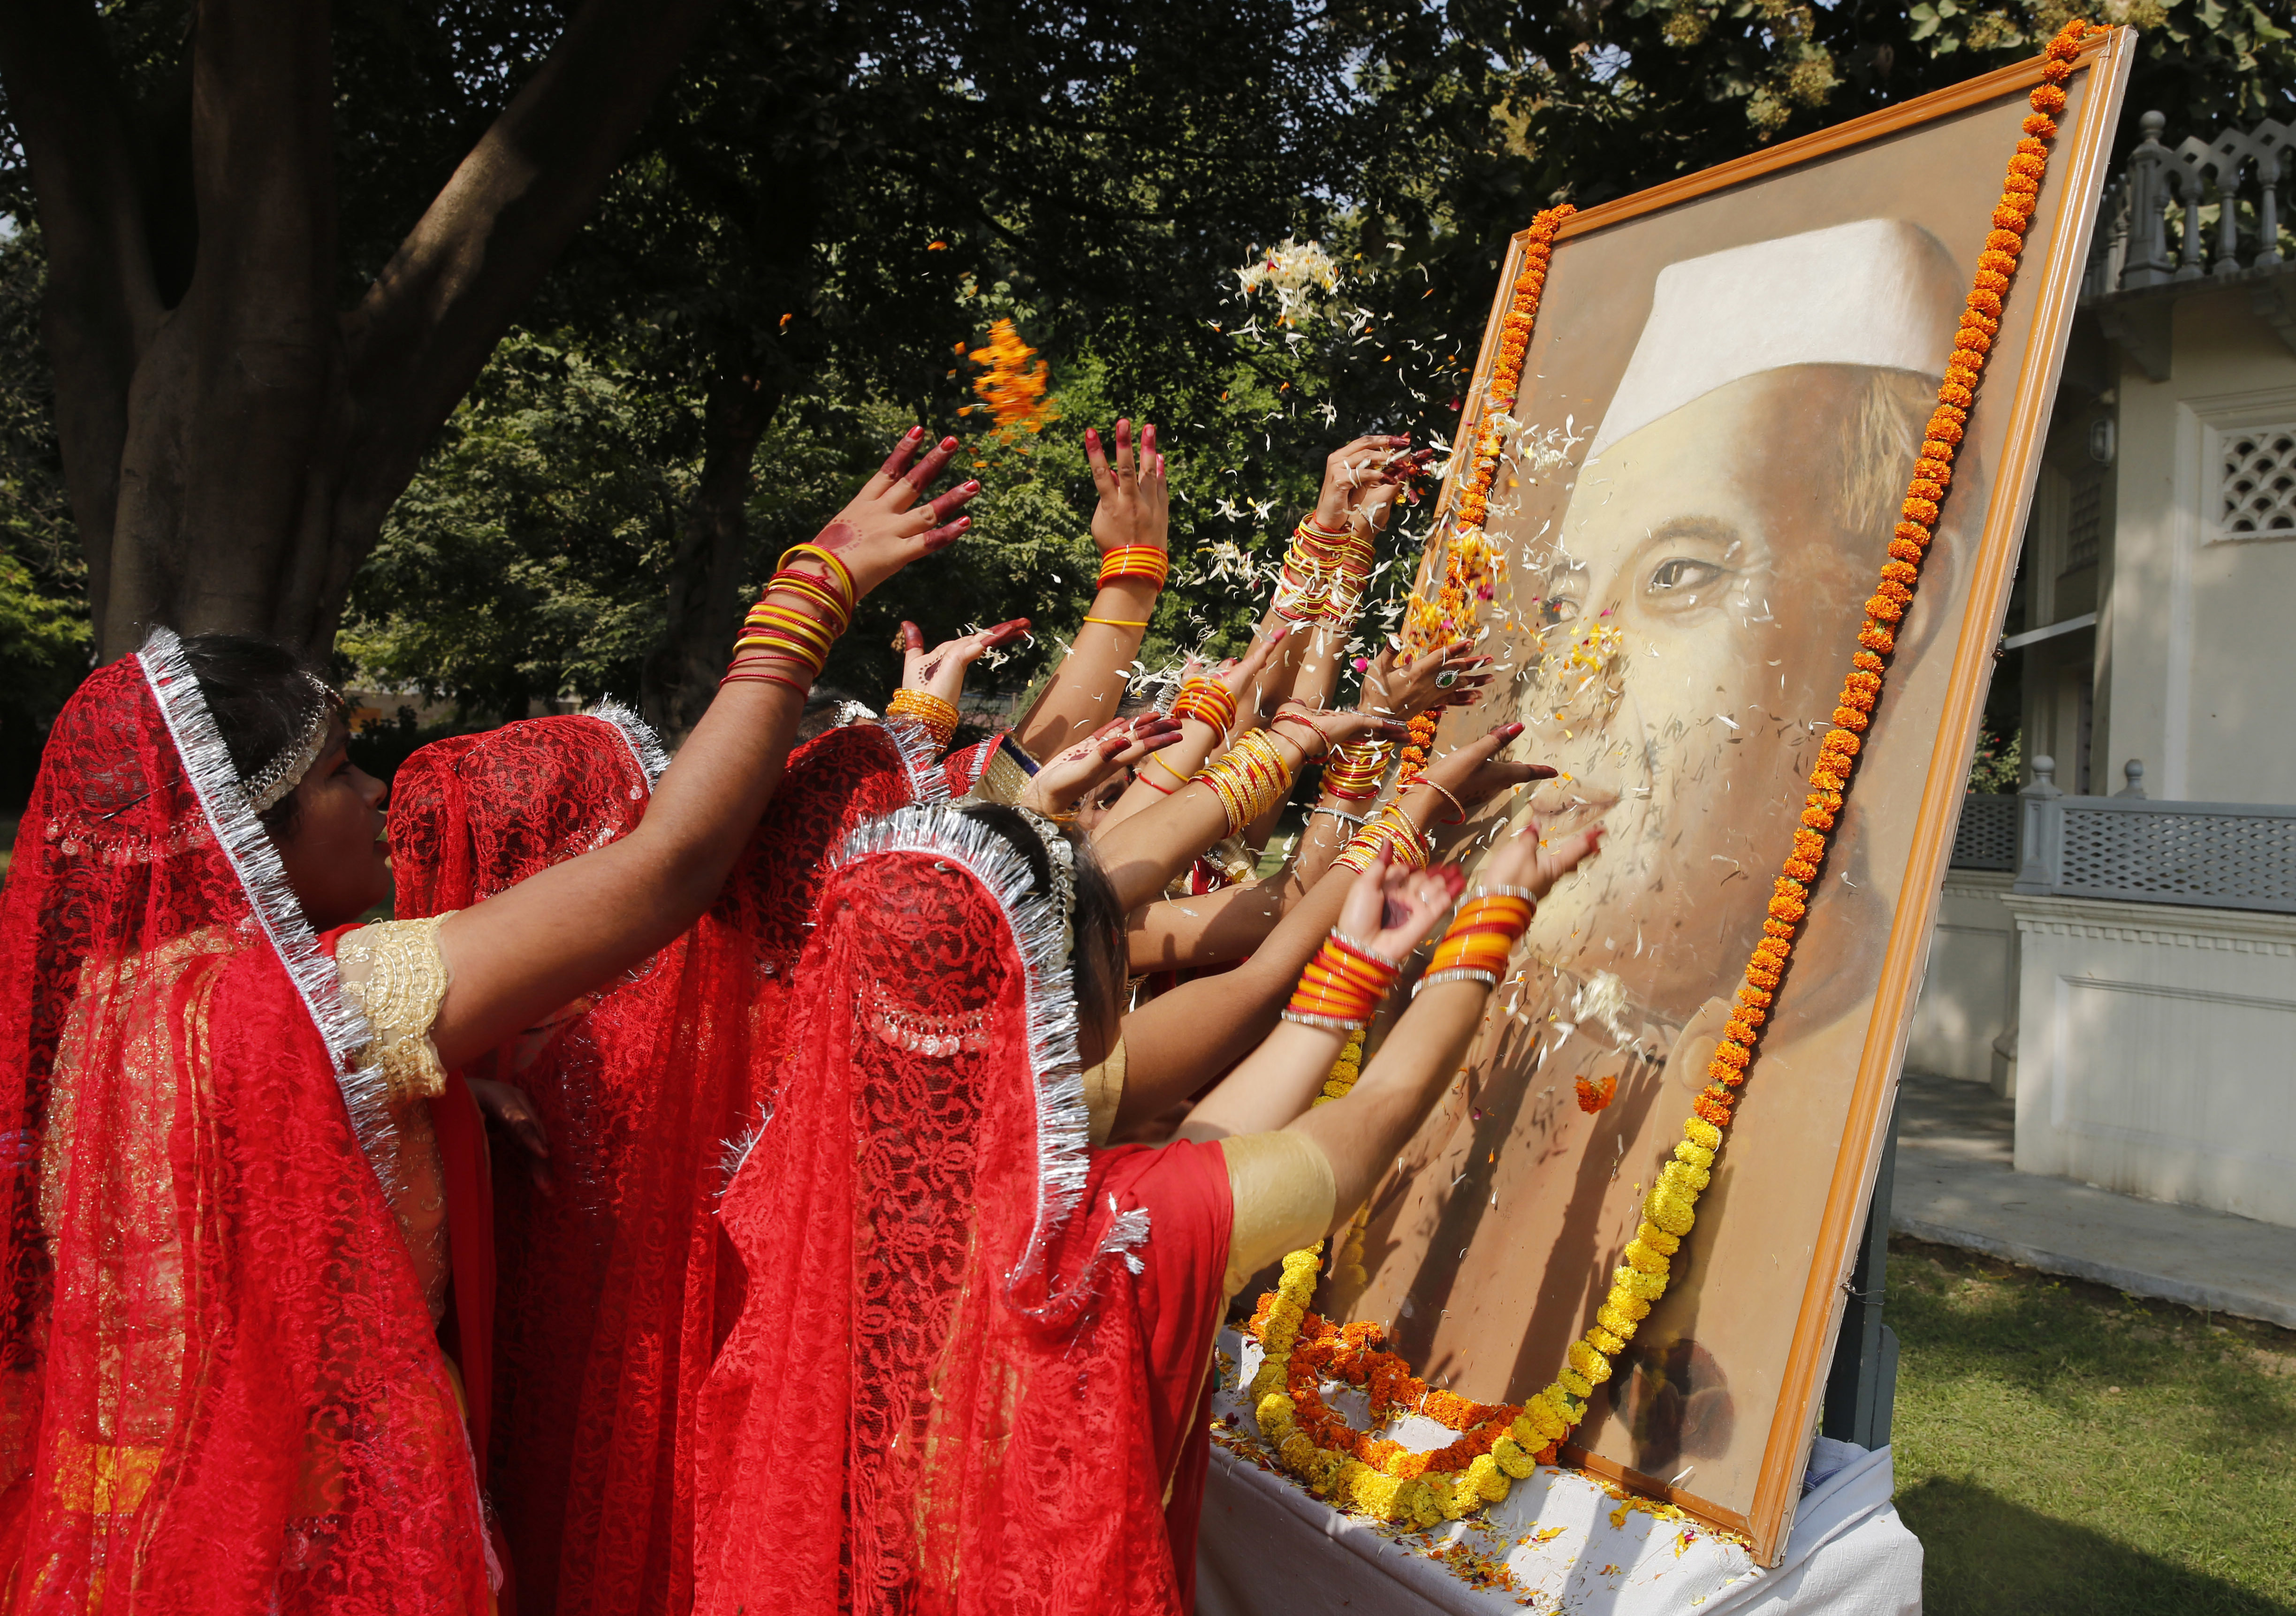 Indian children shower flower petals on a portrait of Jawaharlal Nehru, the country's first prime minister, on his birth anniversary at his ancestral home, Anand Bhawan, in Allahabad - AP